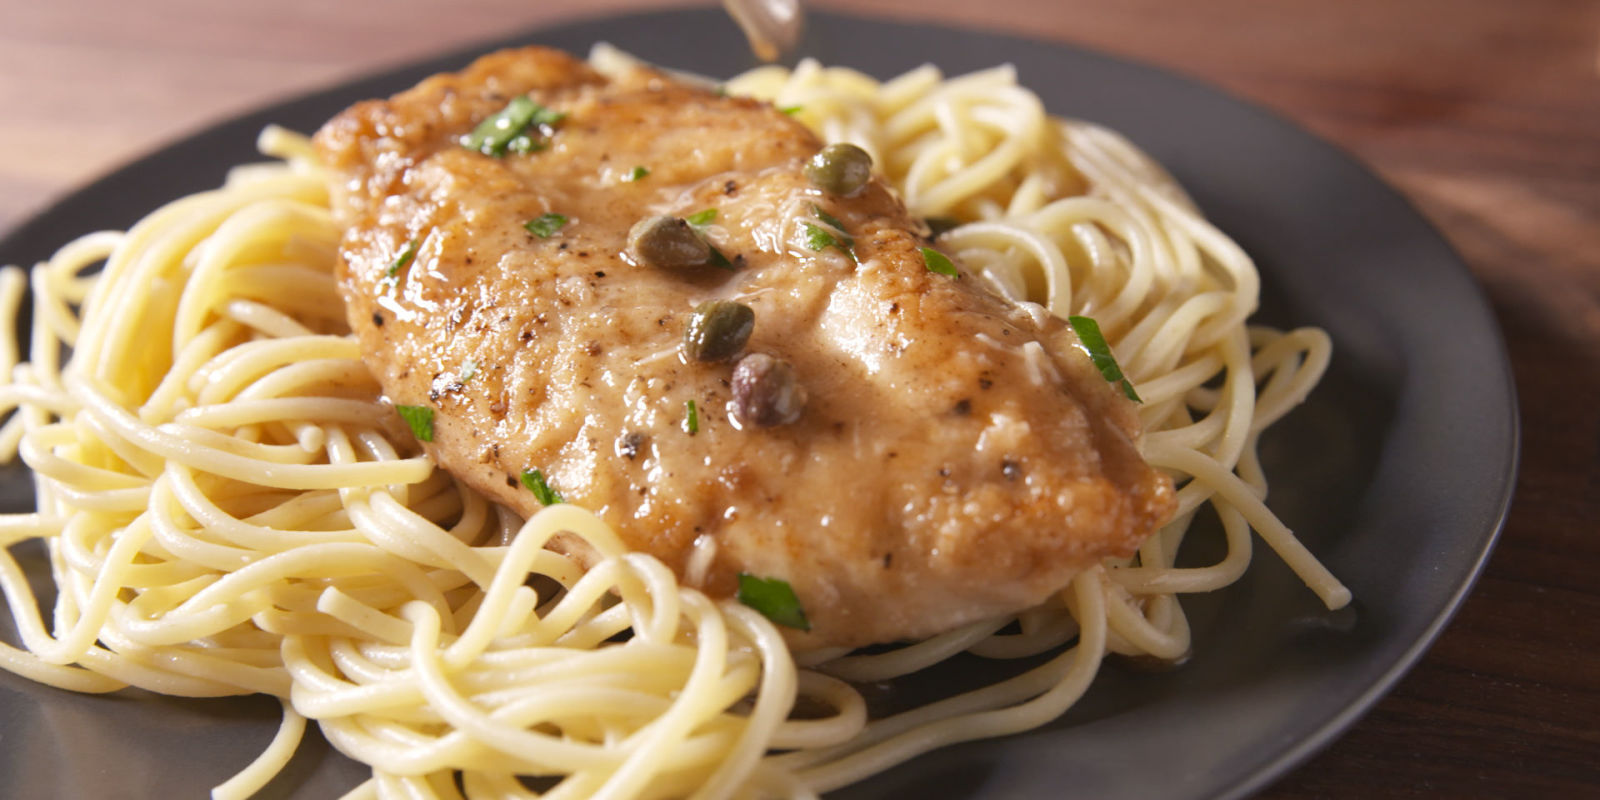 chicken piccata recipe Oven baked chicken thighs with capers, lemon, and garlic this baked chicken piccata takes about 40 minutes to make (most of which is idle baking time) and is a very flavorful weeknight dinner.